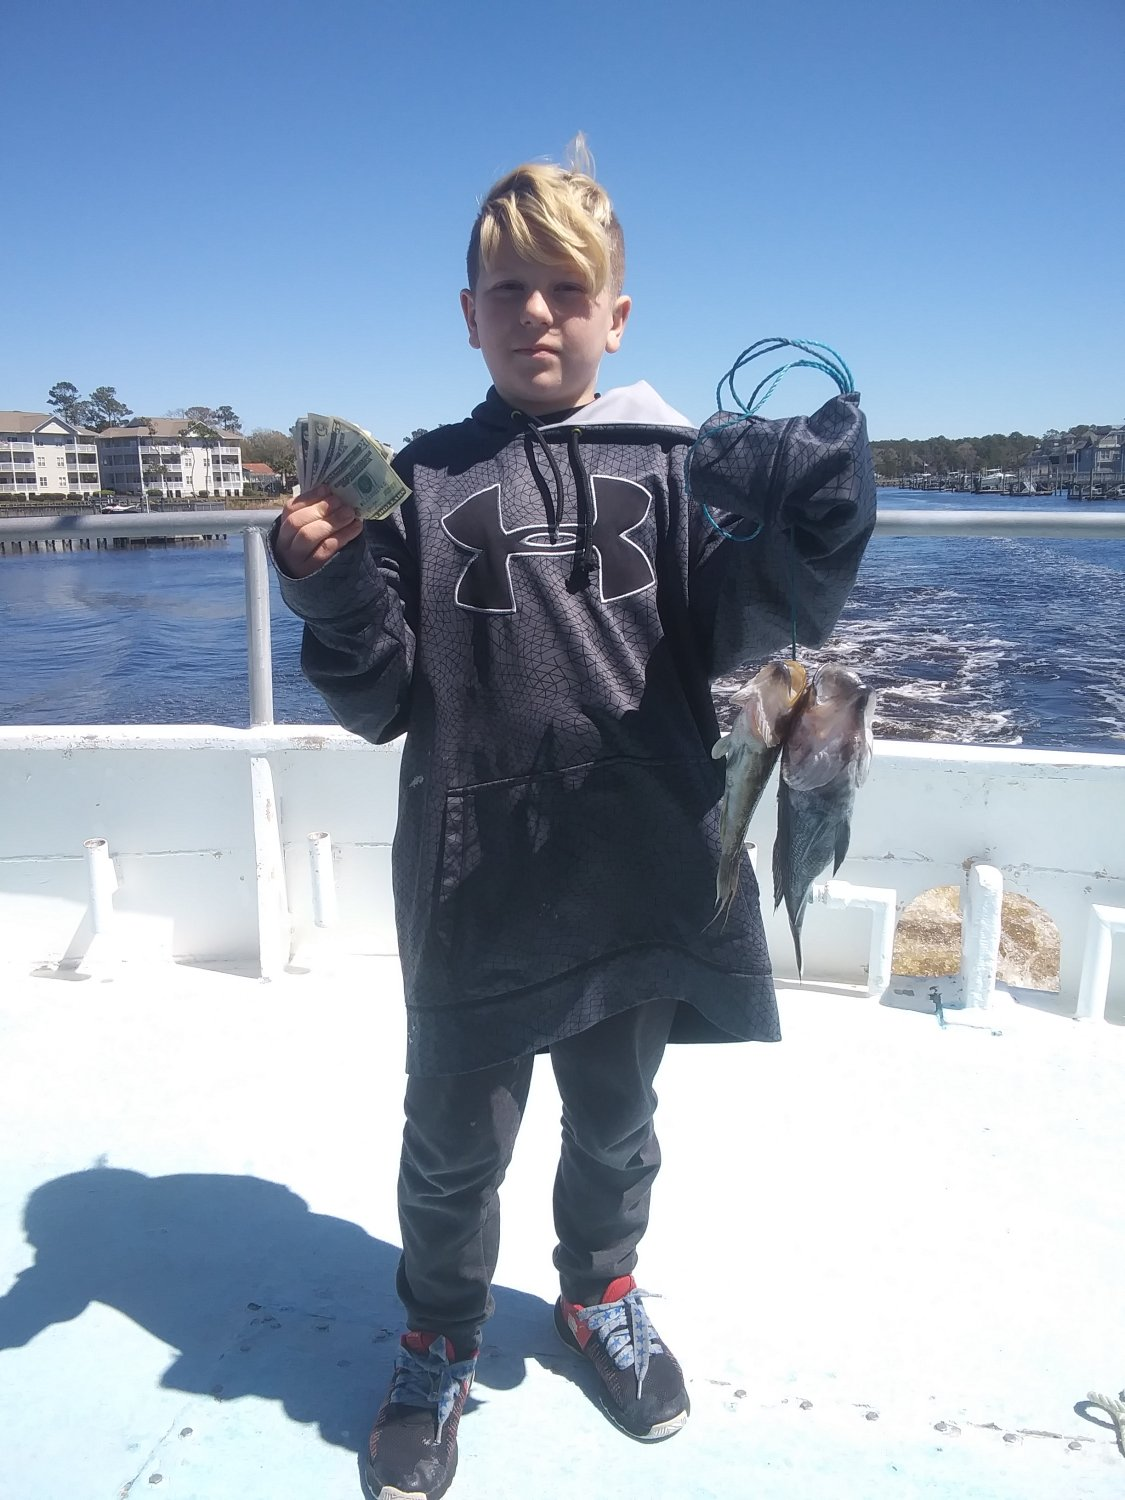 Half Day Fish Pool Winner - 10 year old Bradley F.  from Wilmington, NC